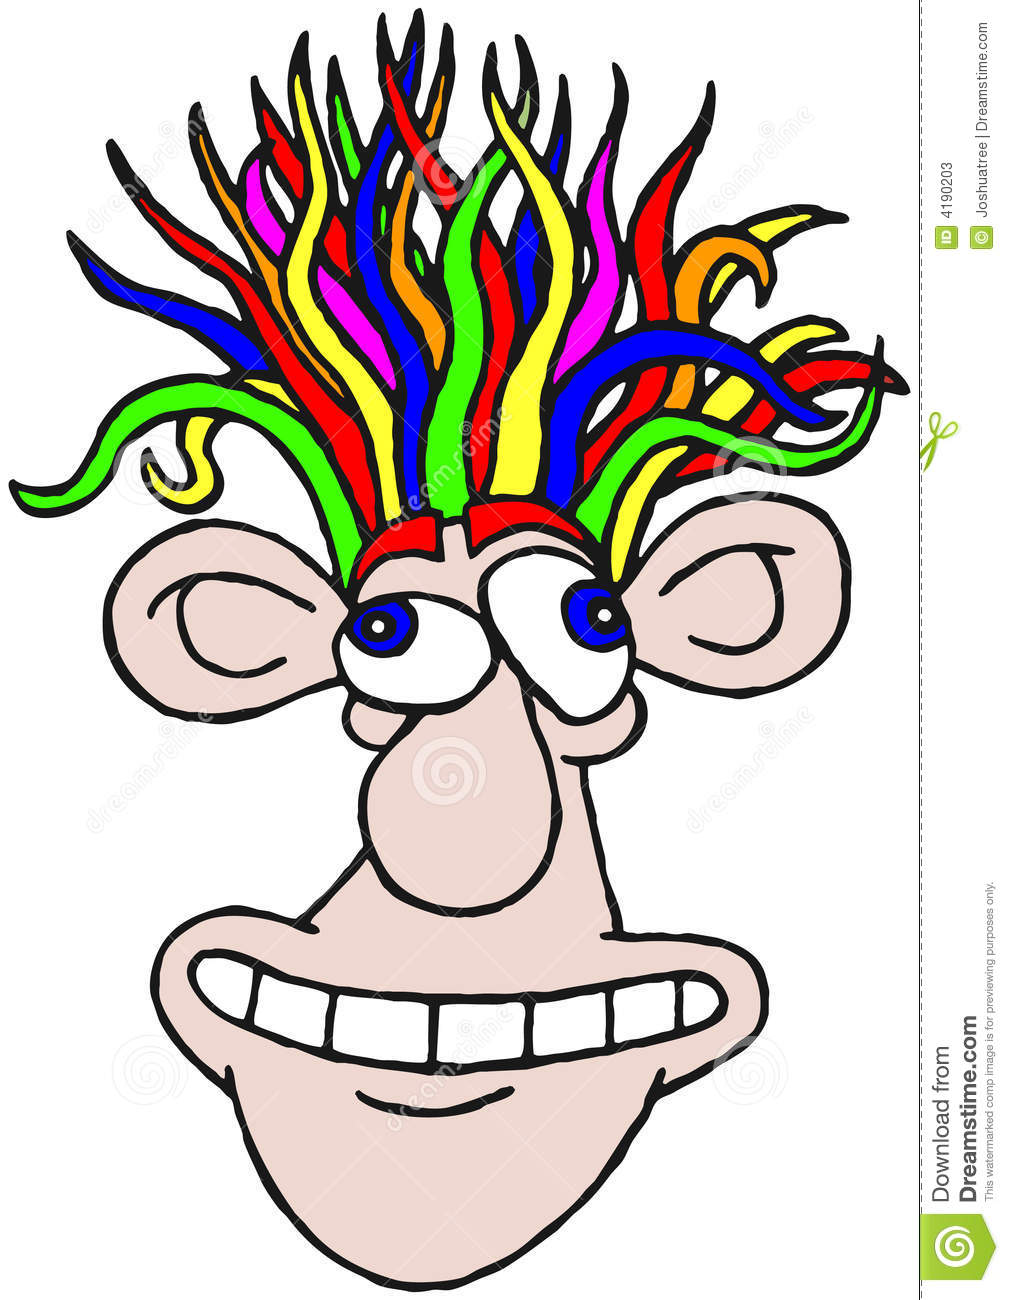 Wacky Hair Clipart Images Pictures Becuo-Wacky Hair Clipart Images Pictures Becuo-1